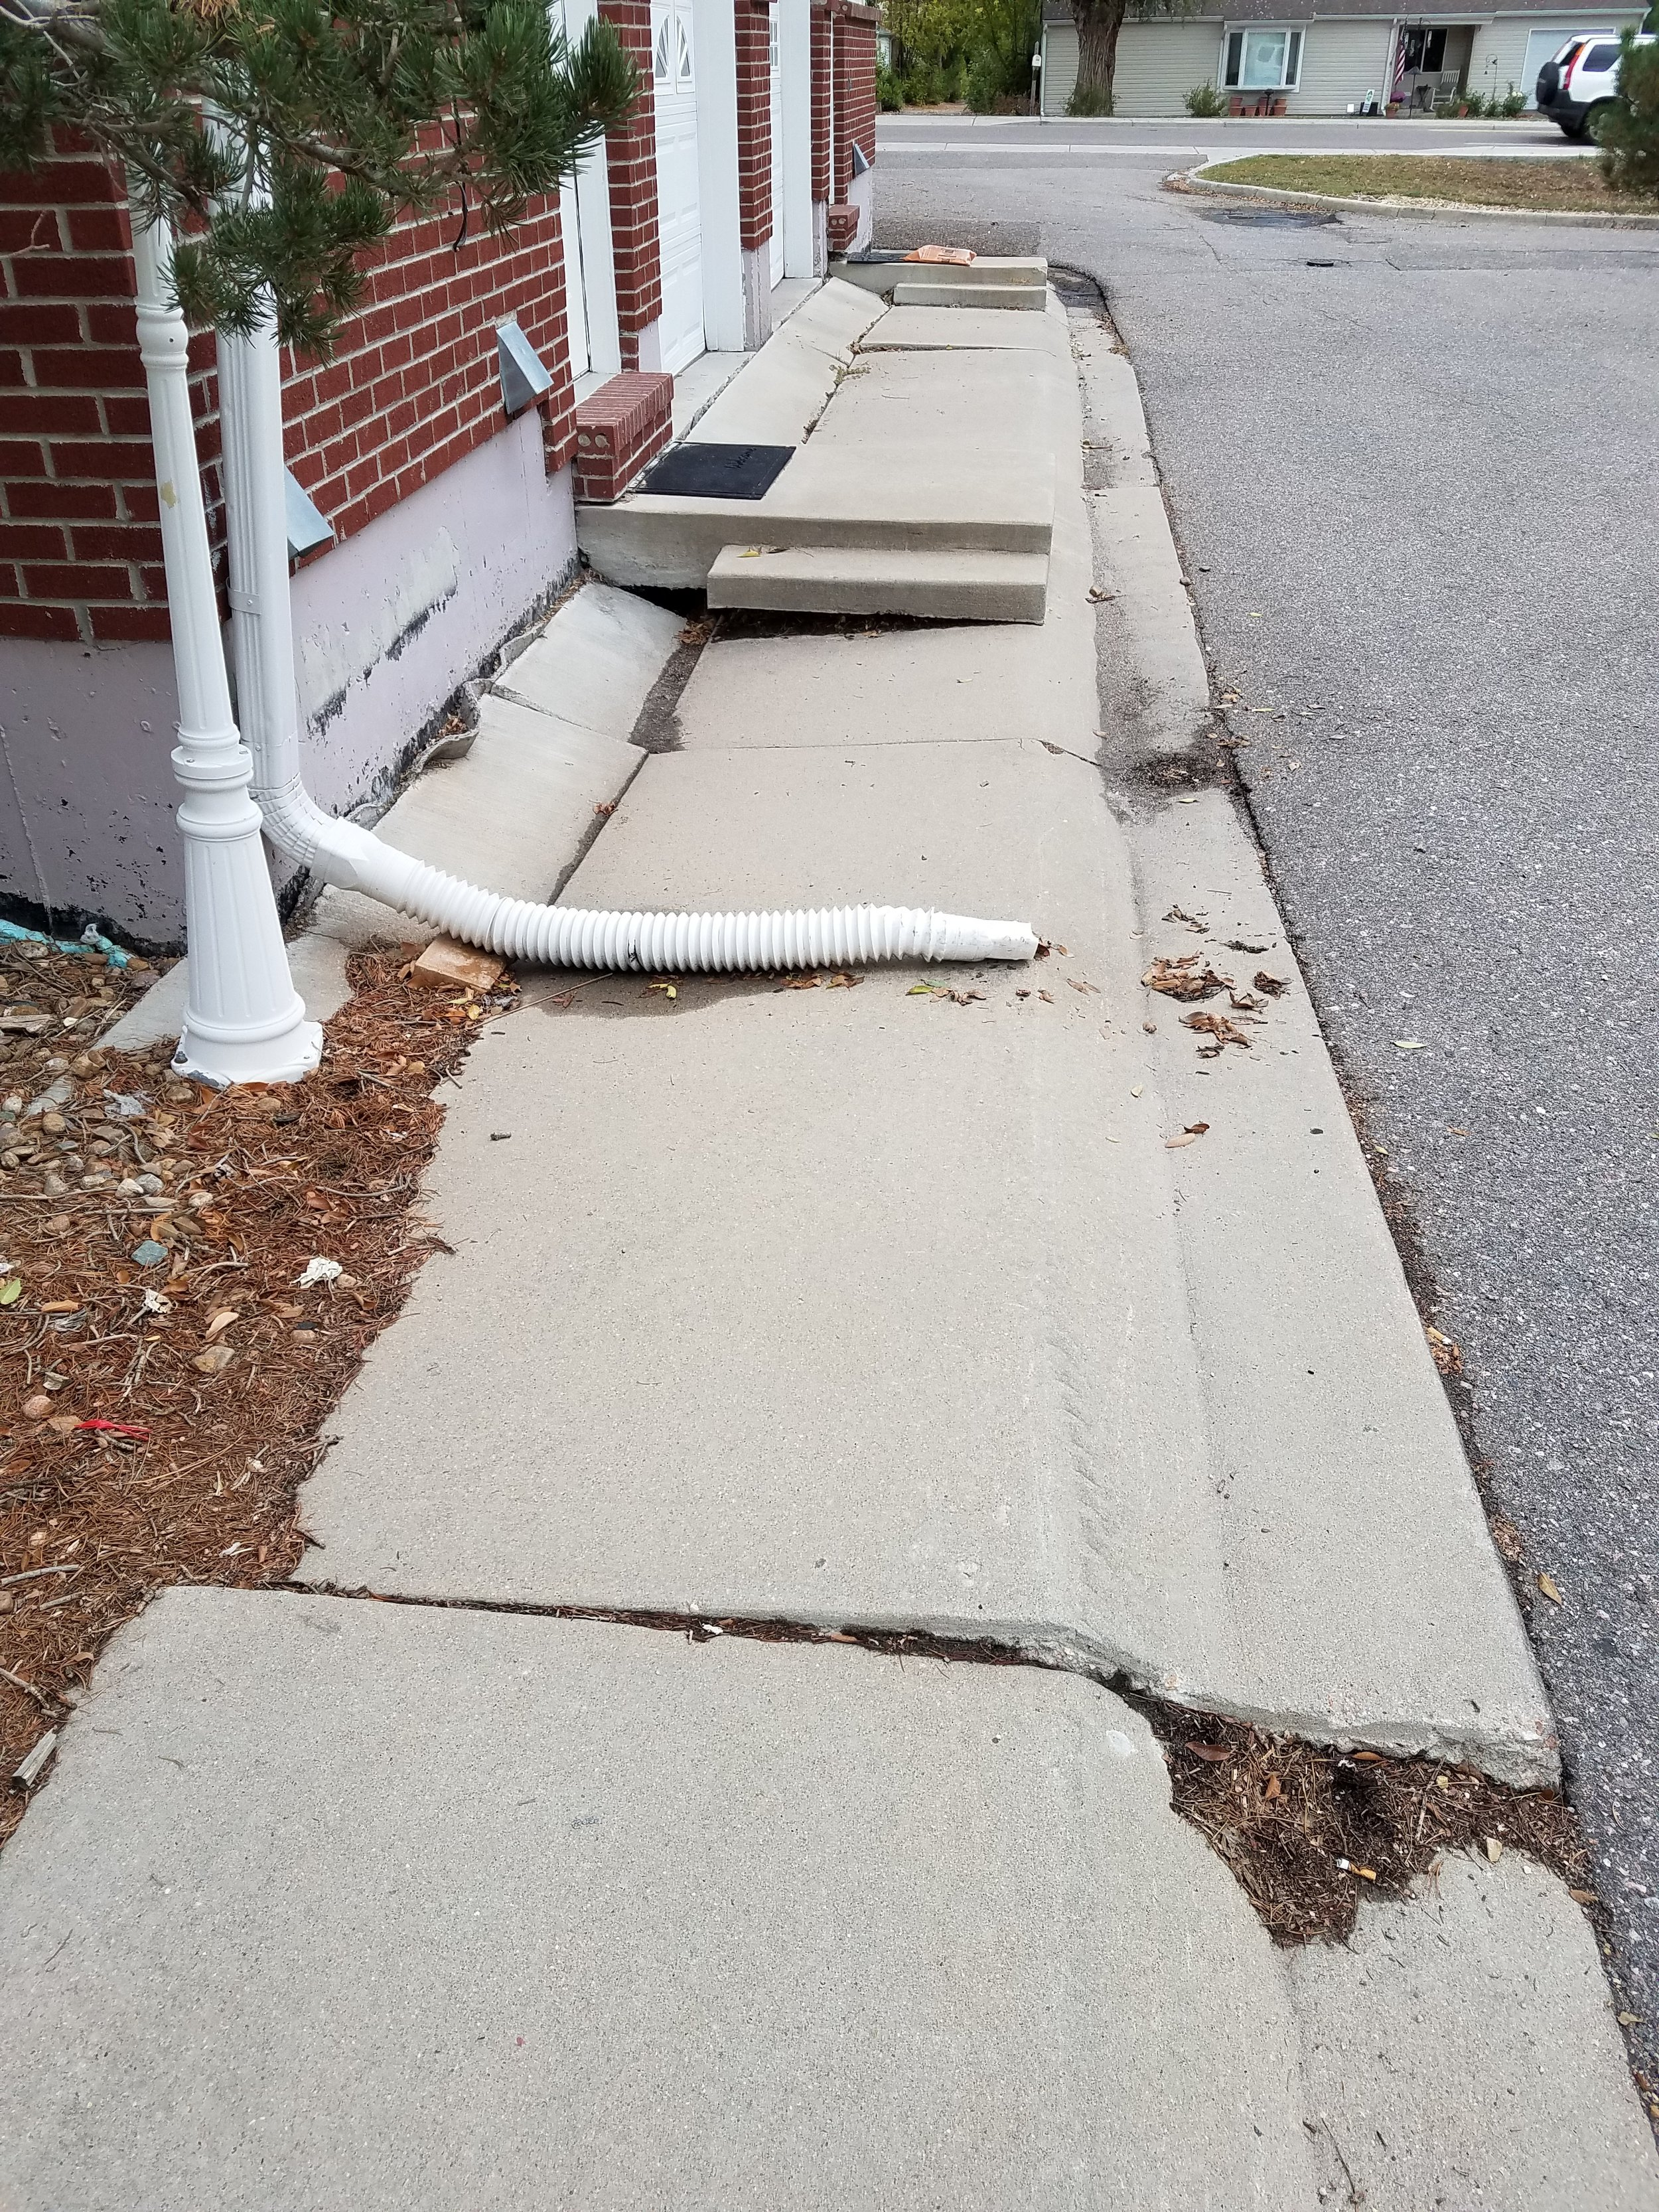 Improper exterior drainage can do a lot of damage and accounts for 90% of water entry into basements and crawlspaces.